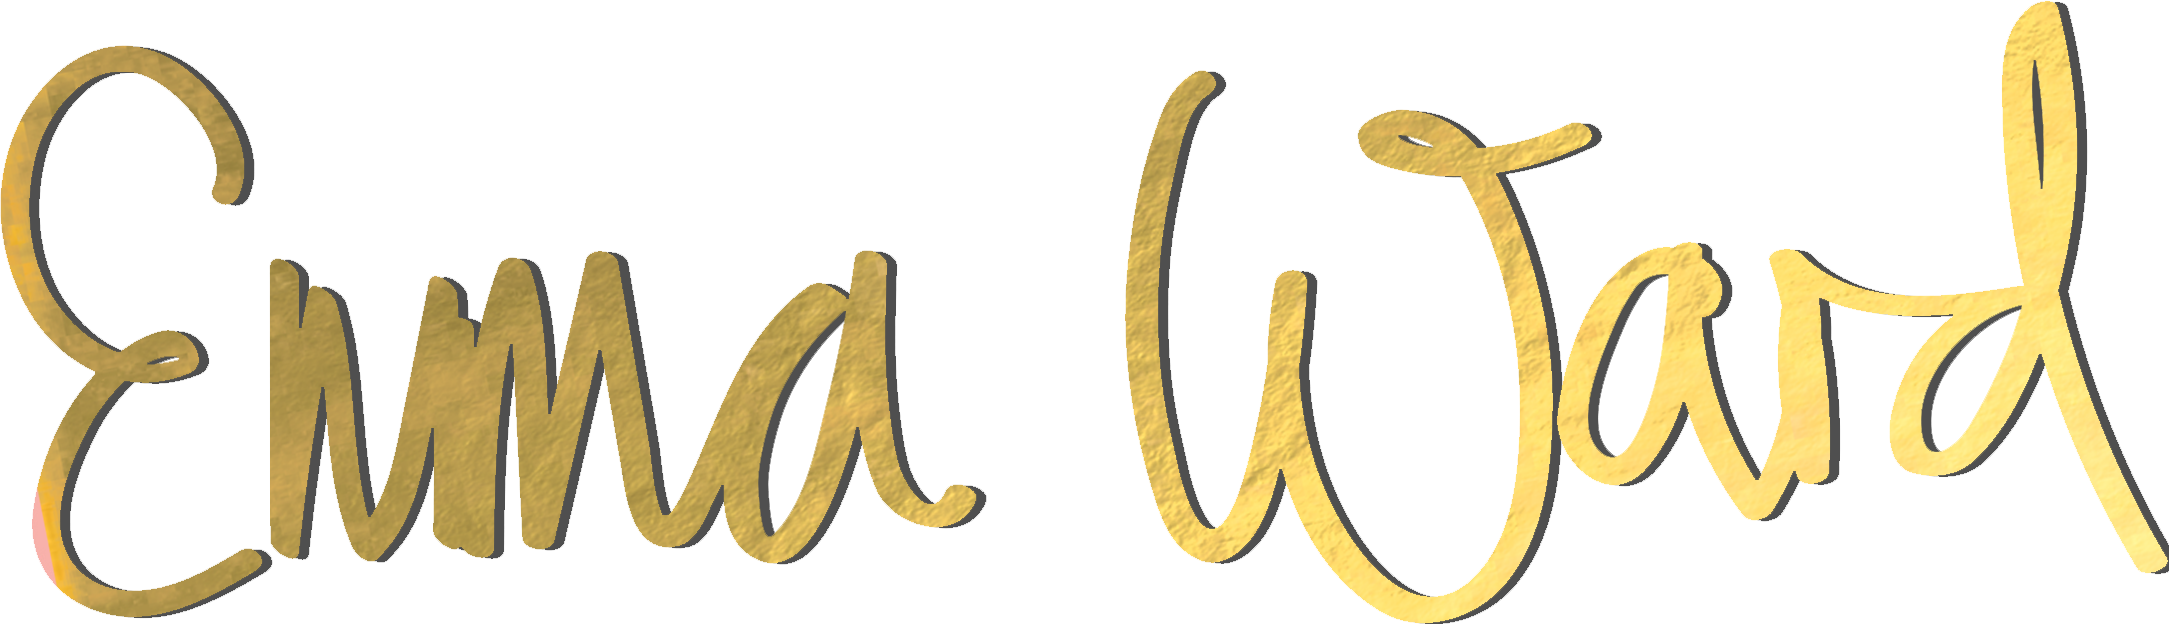 Emma Logo Name only - shadow - gold.png